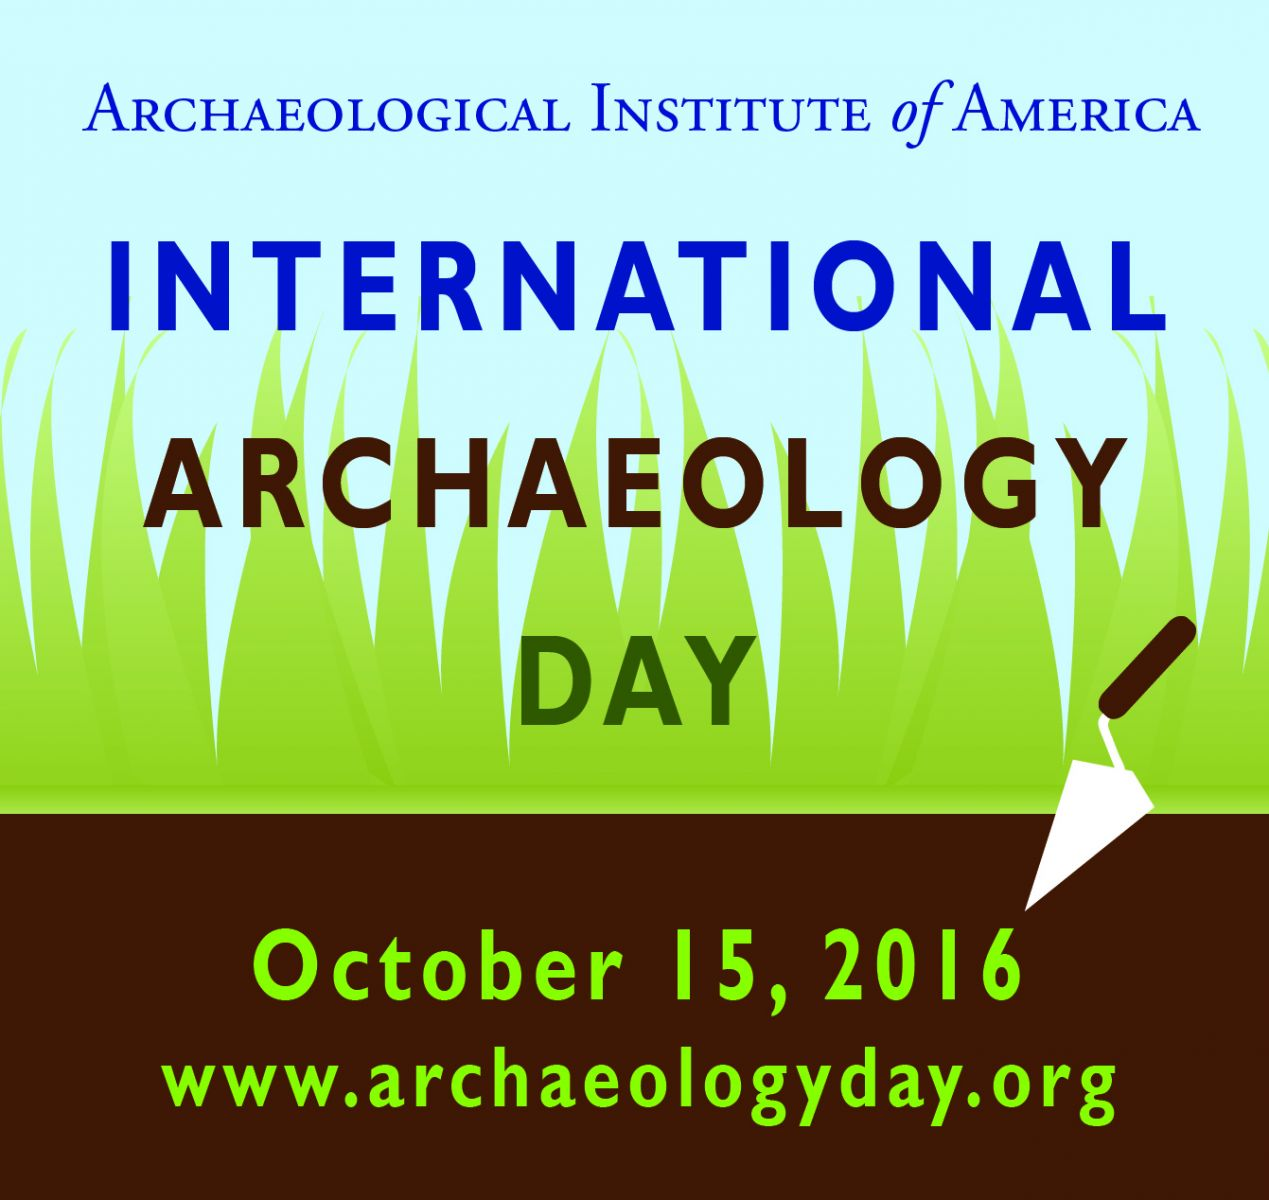 What additional schooling is needed beyond high school to be a archaeologist?